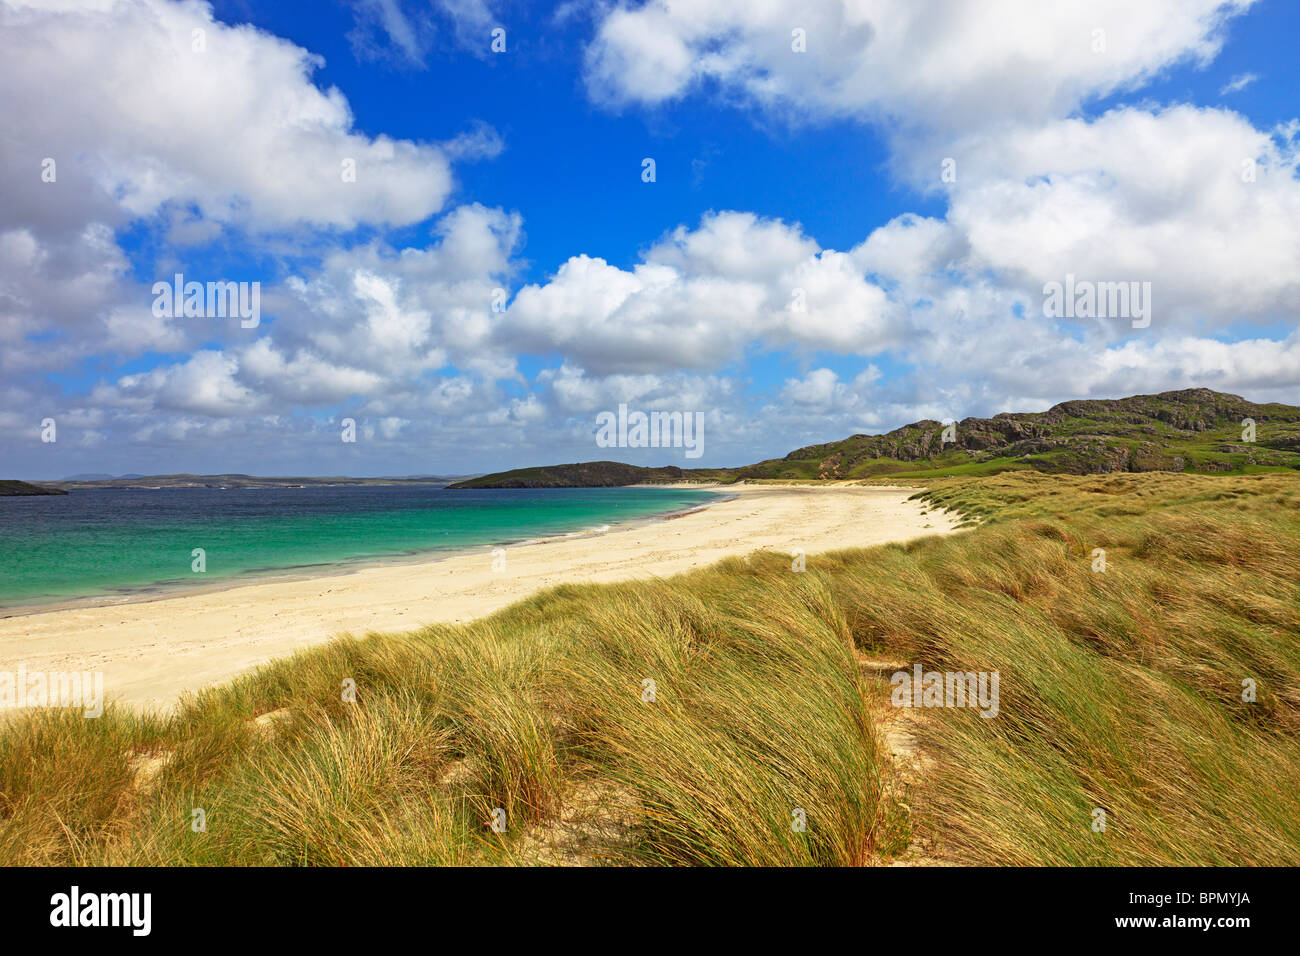 Reef beach, Isle of lewis, Outer Hebrides, Scotland - Stock Image